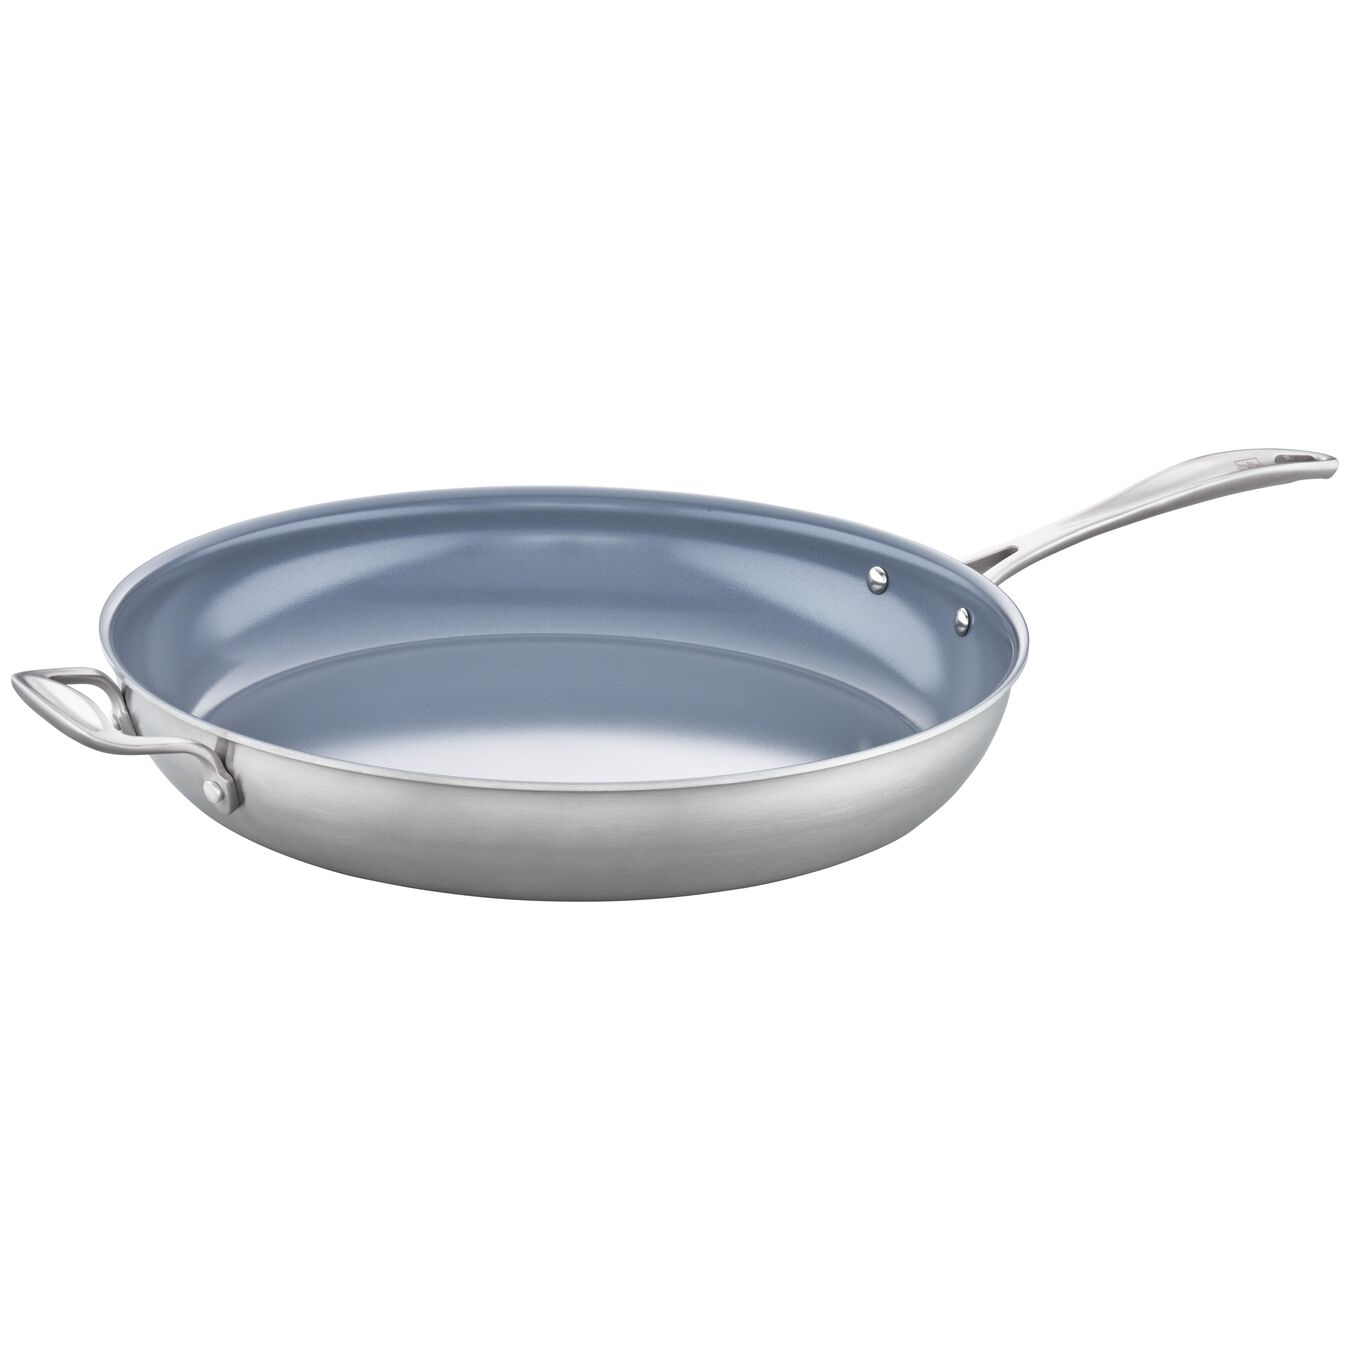 14-inch, 18/10 Stainless Steel, Non-stick, Frying pan,,large 3